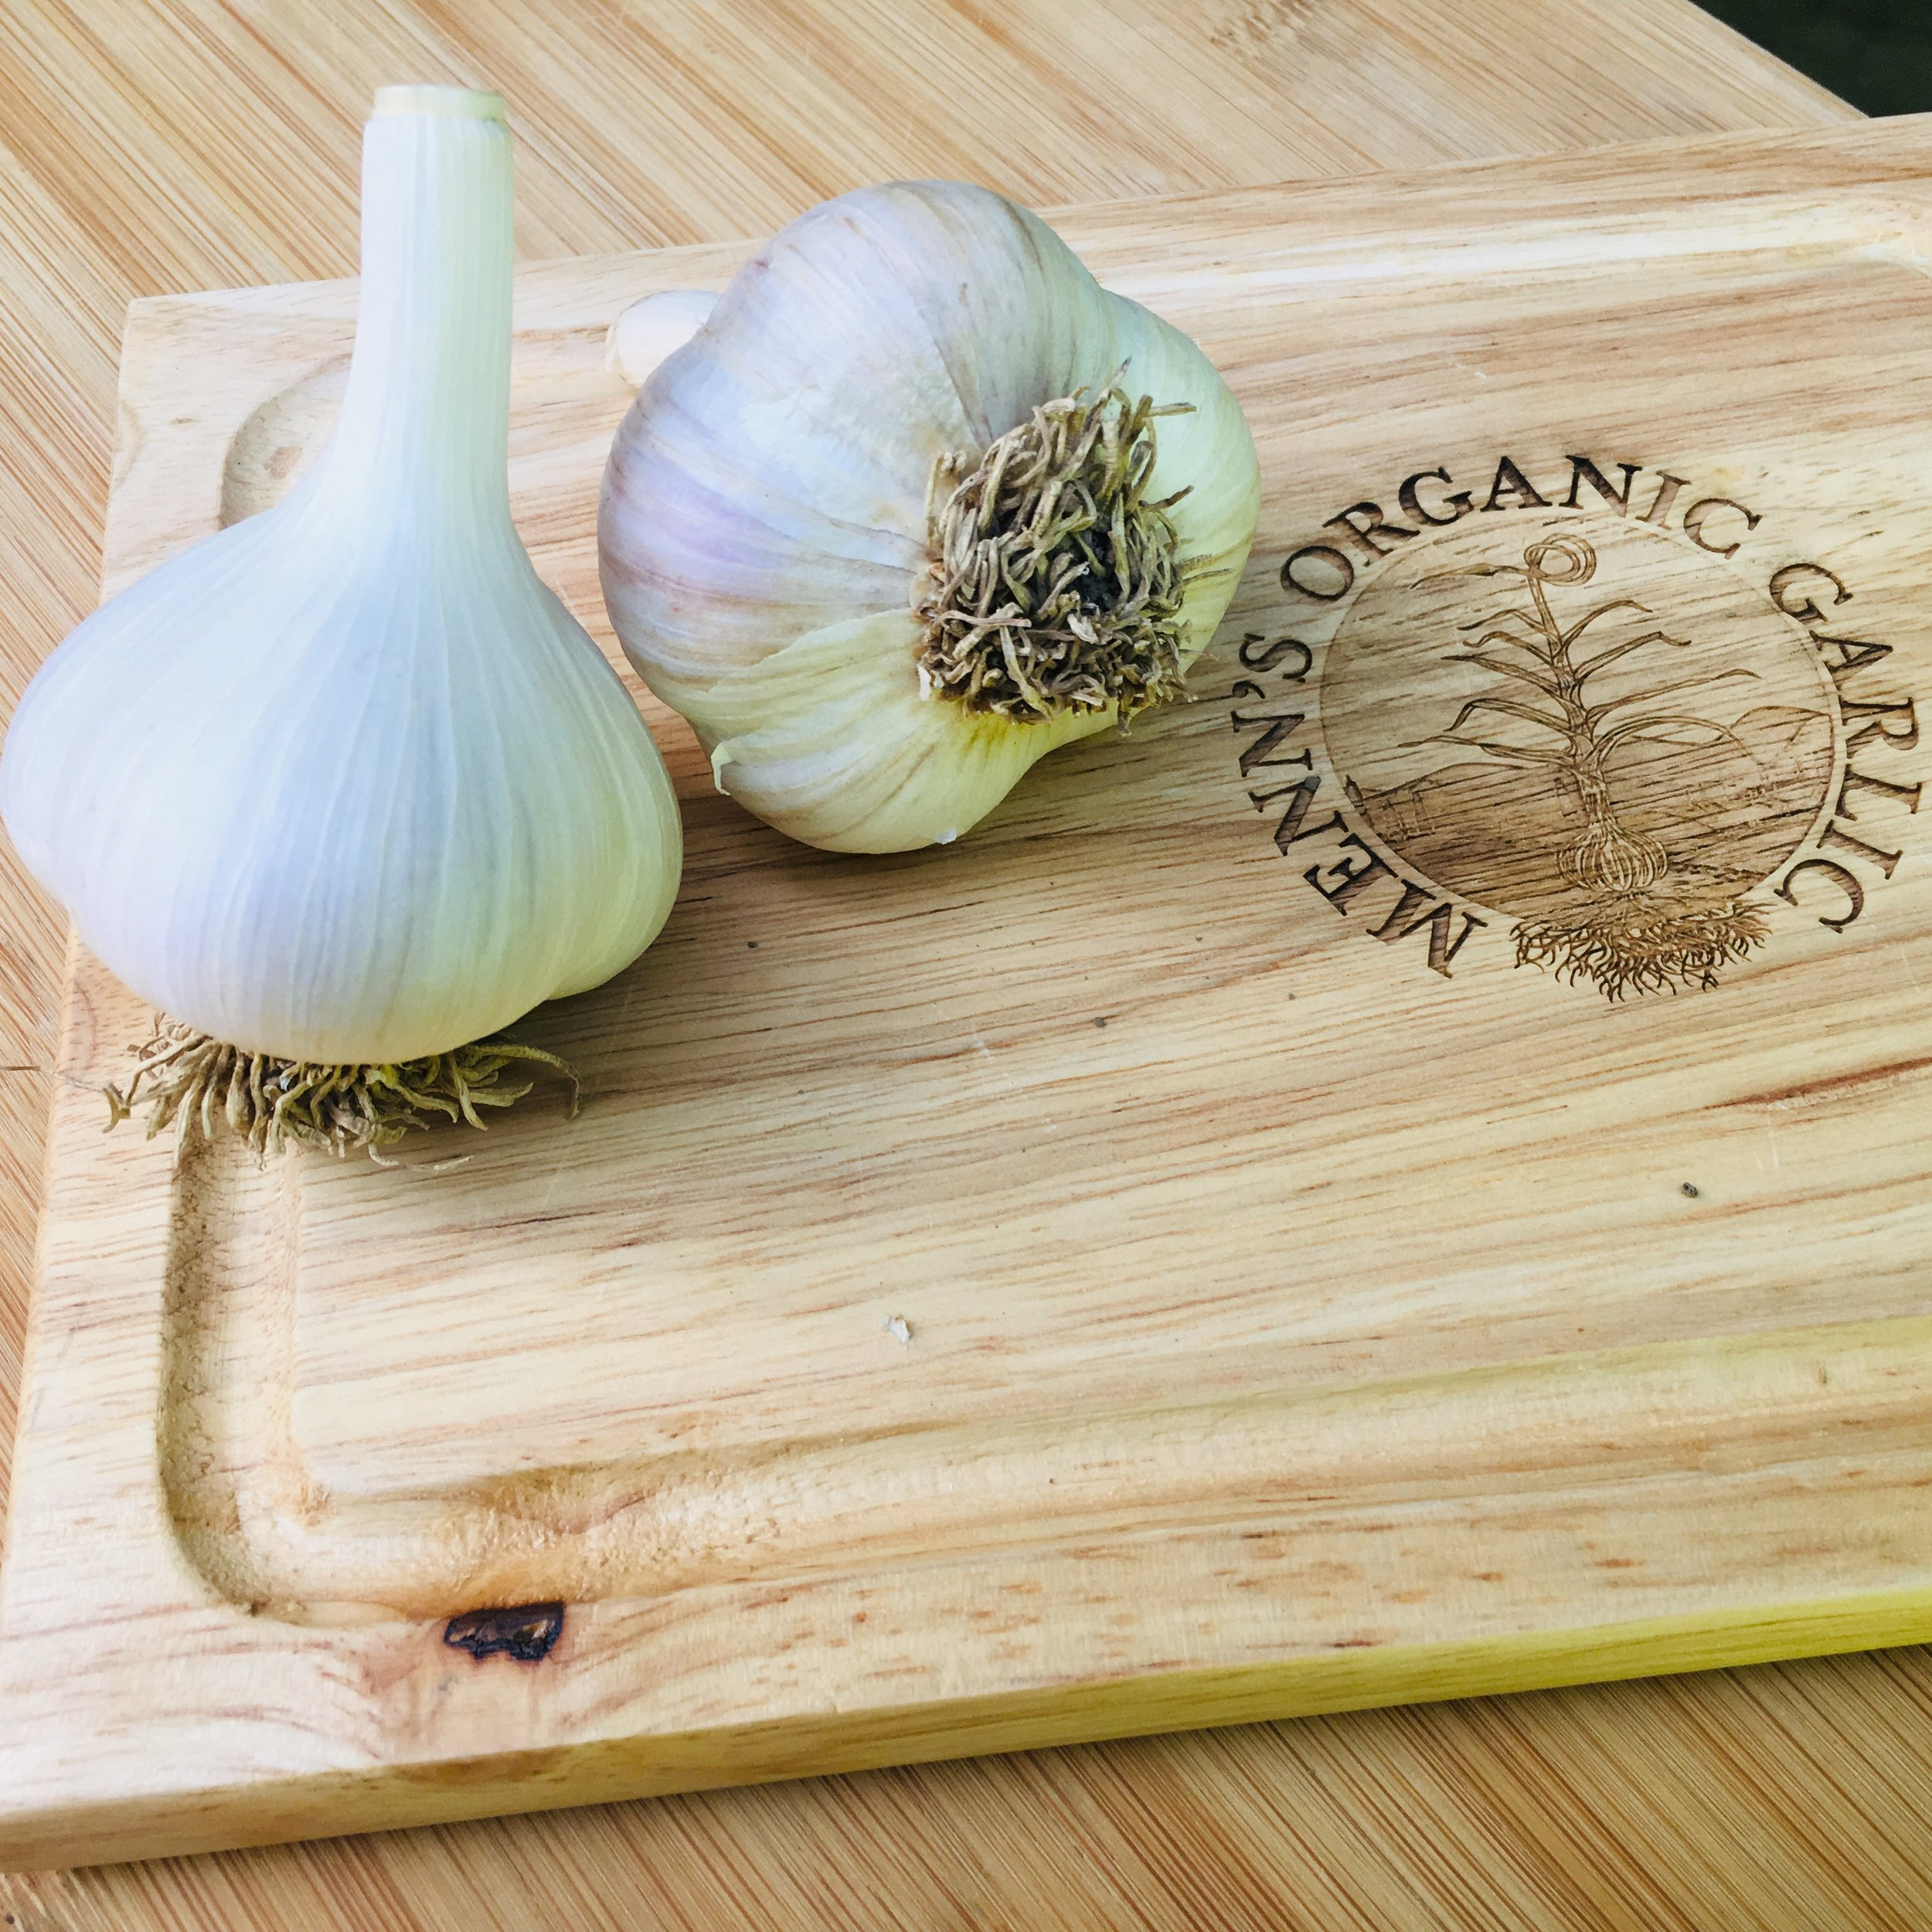 Georgian Fire (Sold Out) - A large porcelain hardneck garlic that has a robust spicy flavor and lingering aftertaste. The bulbs can store into spring and contain 4-6 cloves. This varietyis great for salsa and salads.